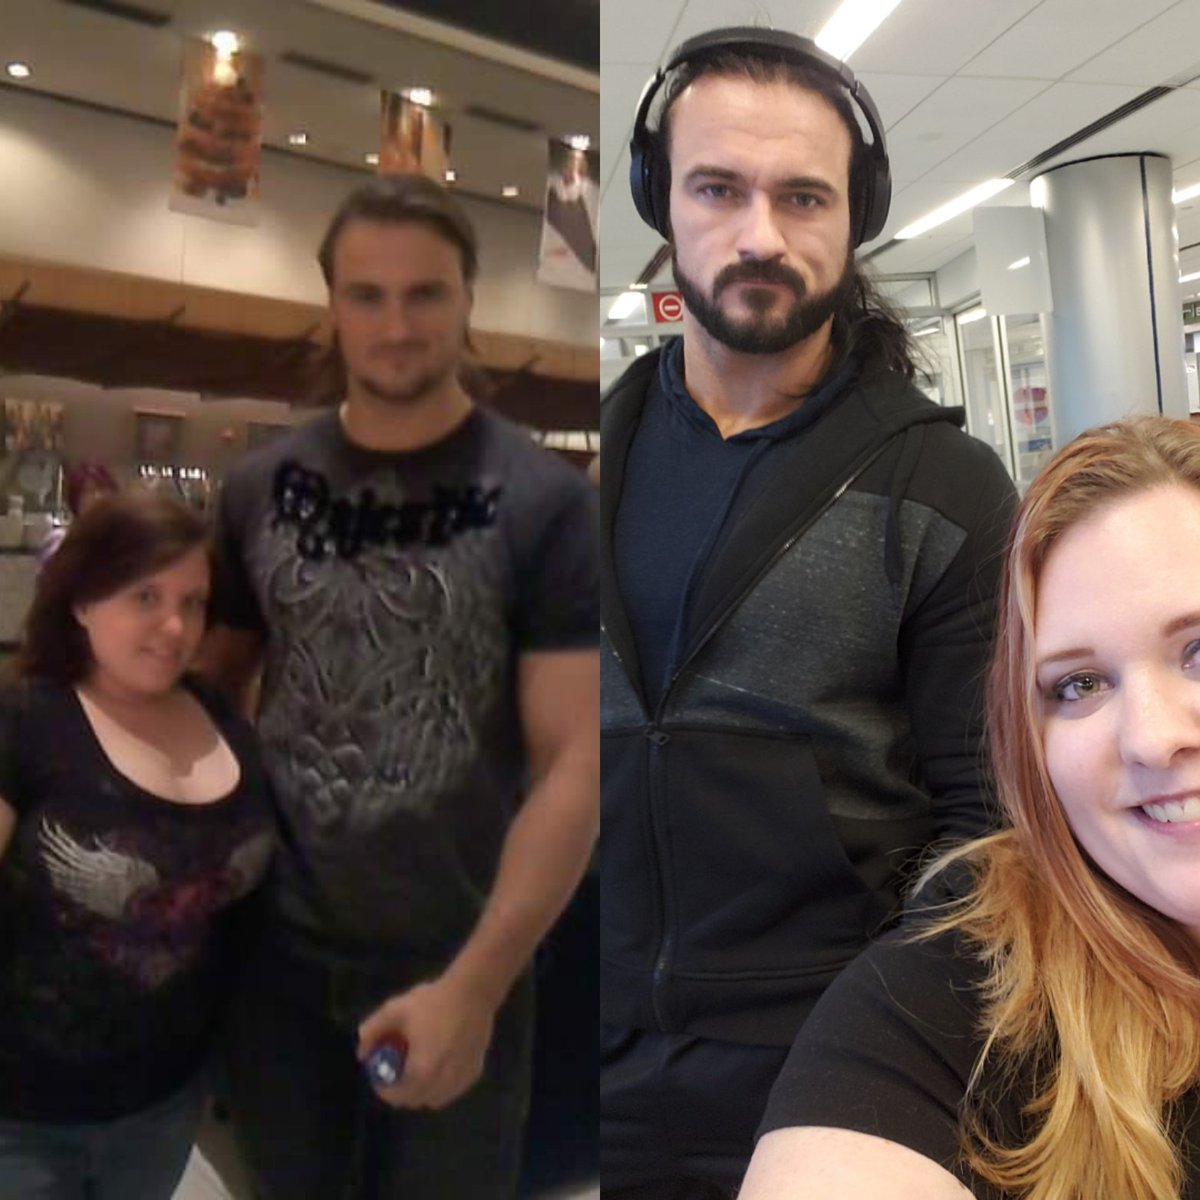 #tbt #ThrowbackThursday to the first time I met @DMcIntyreWWE #WM27 #WrestleMania what a difference. And look at that kilt!